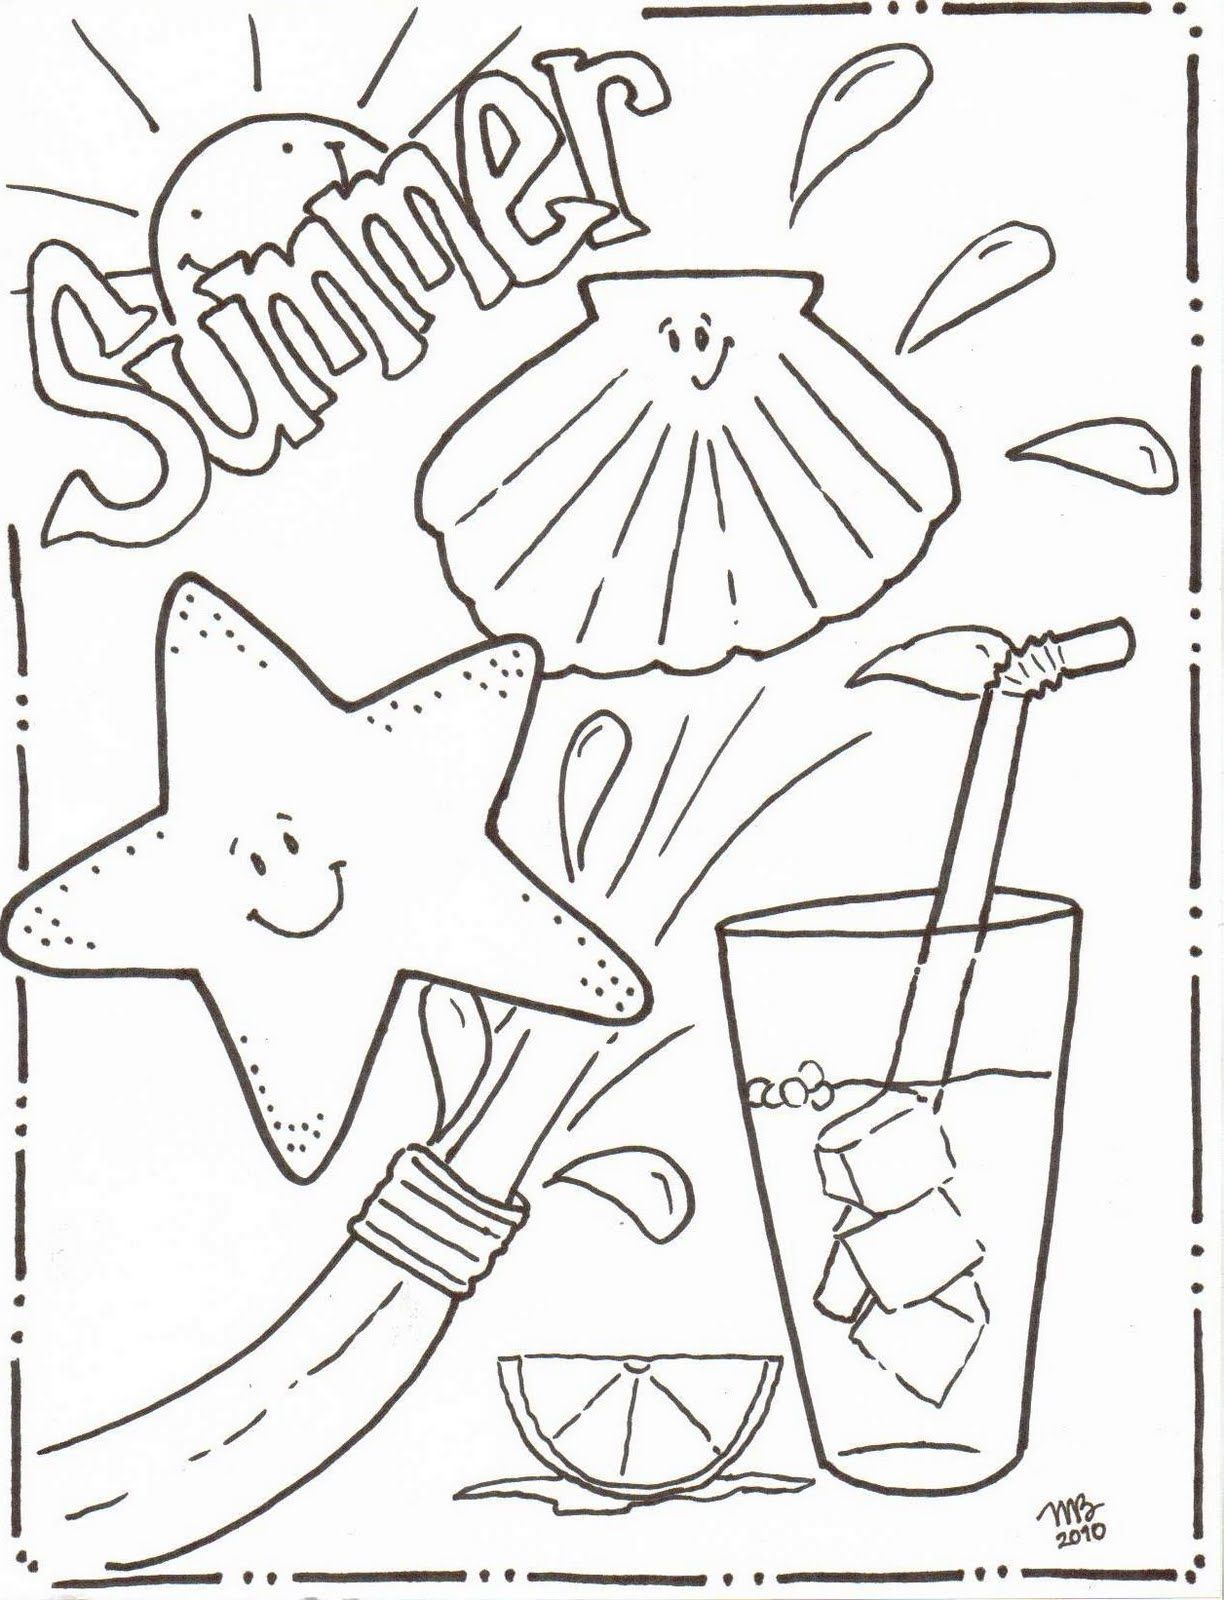 Summertime Coloring Sheets Michelle Kemper Brownlow Summer Coloring Pages Original Mkb De Cool Coloring Pages Summer Coloring Sheets Summer Coloring Pages